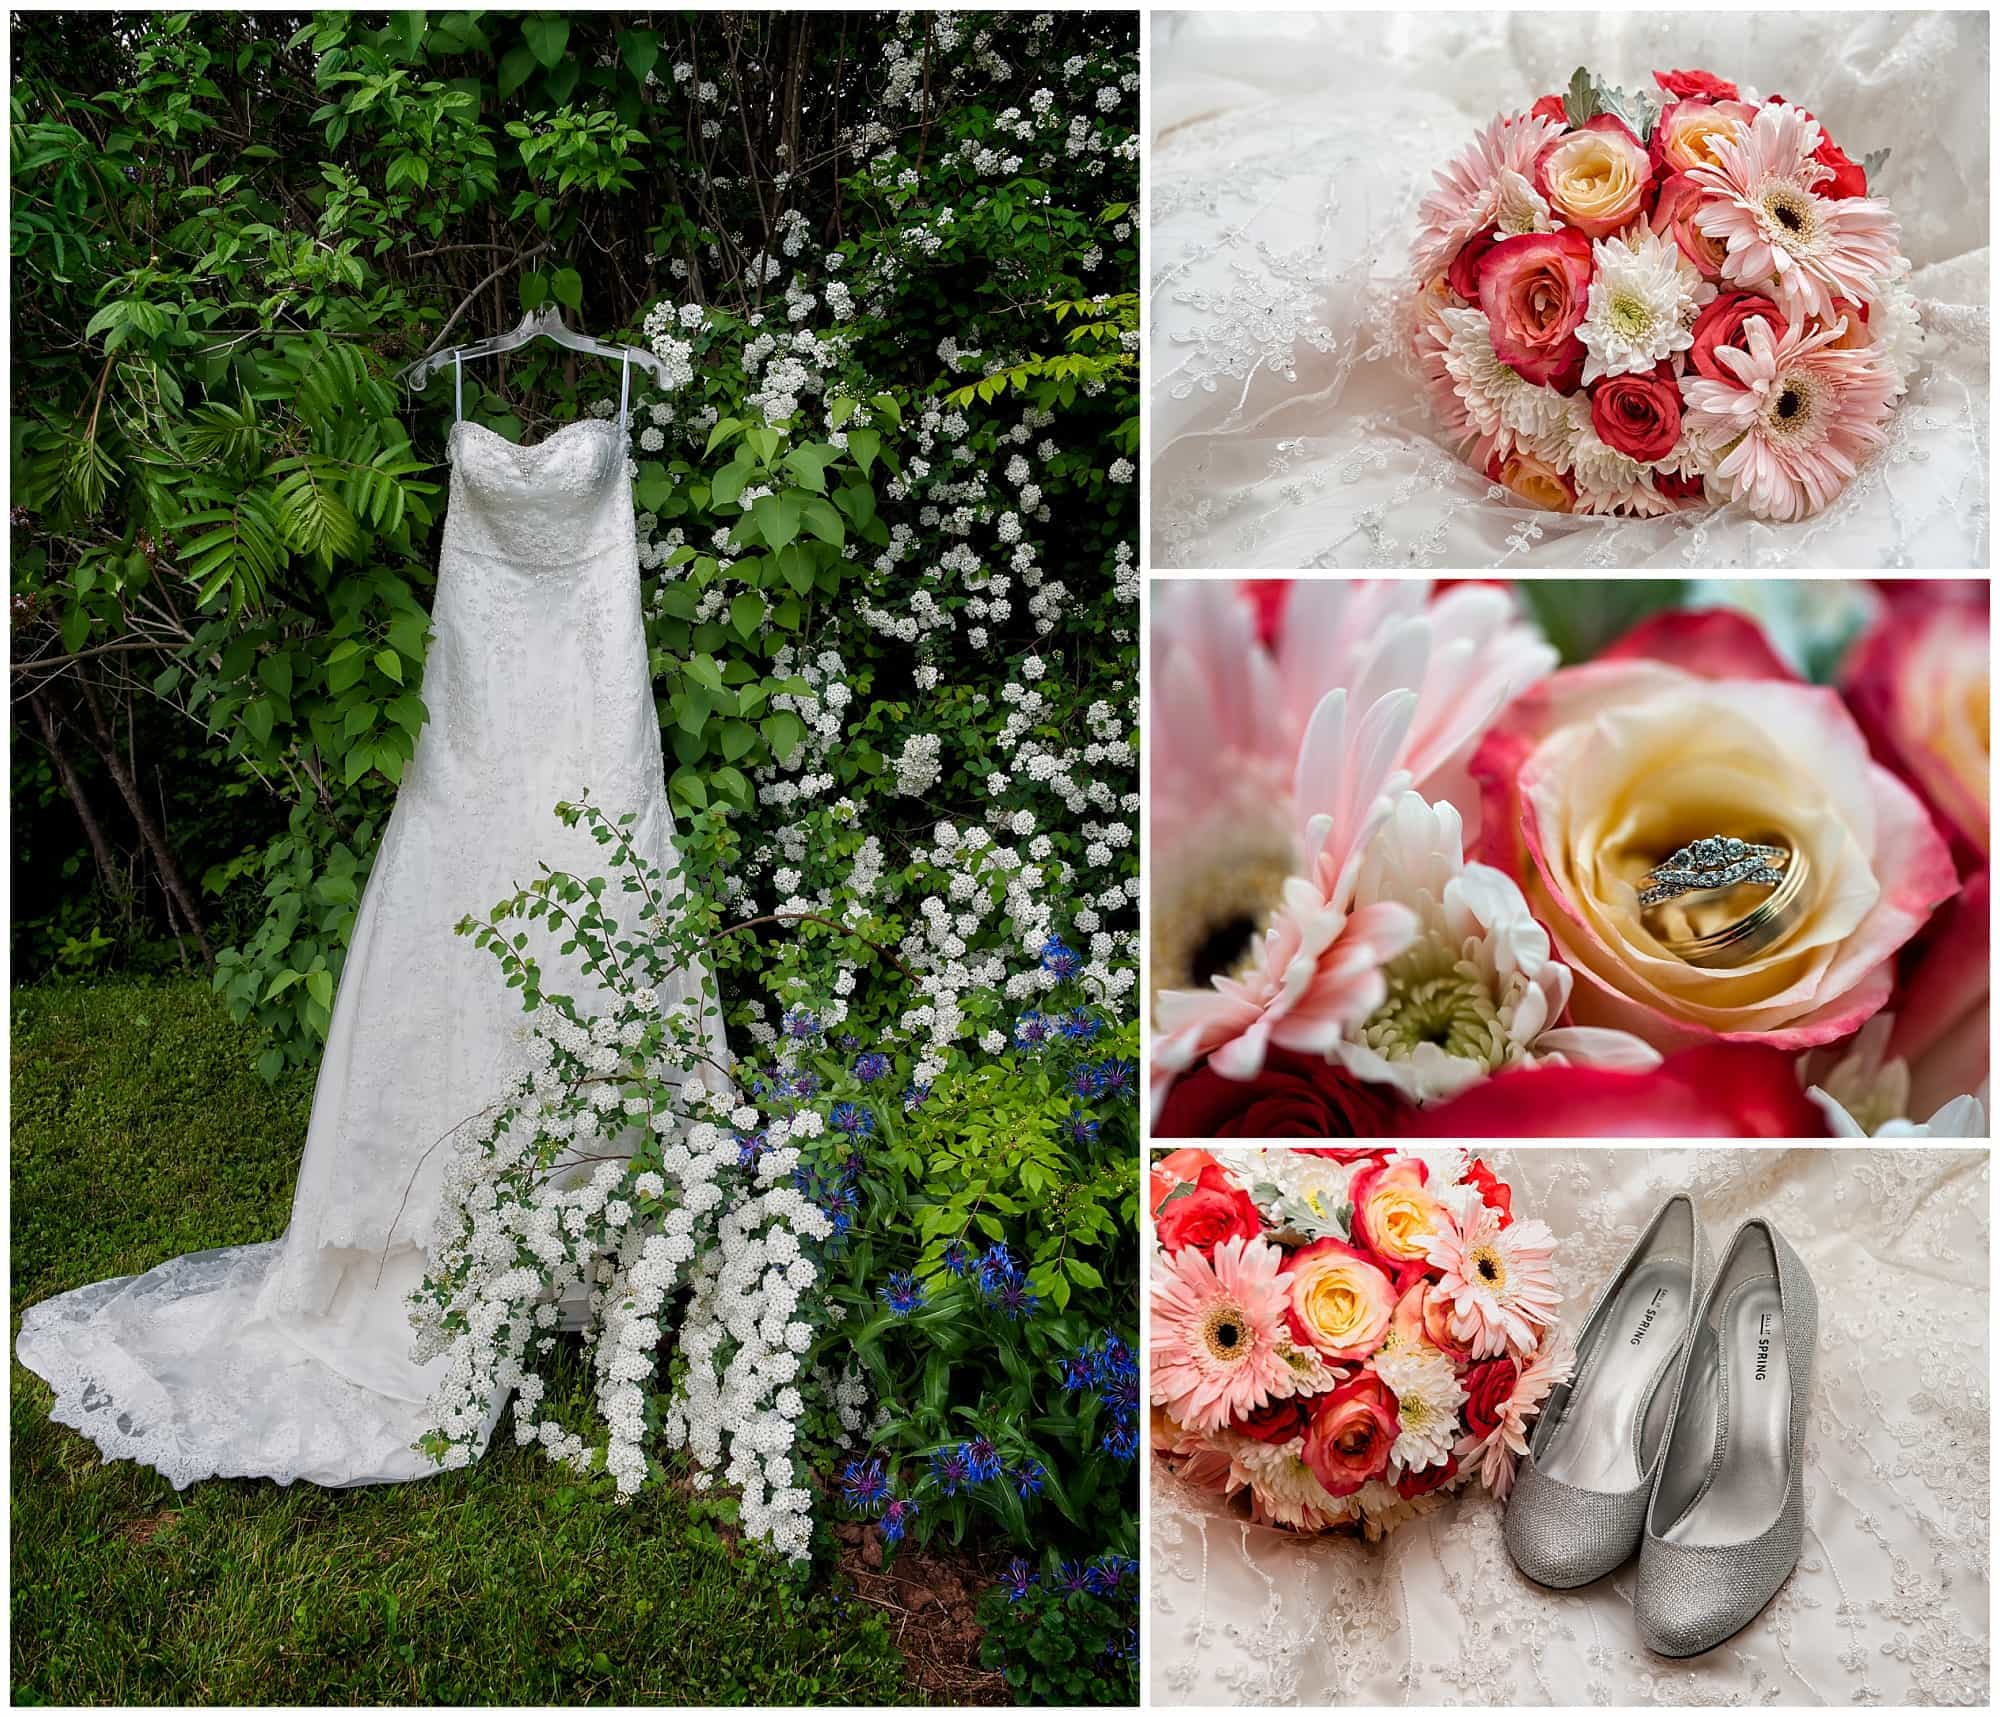 A collage of the bride's wedding dress, bridal bouquet, wedding shoes and wedding rings among the flower.